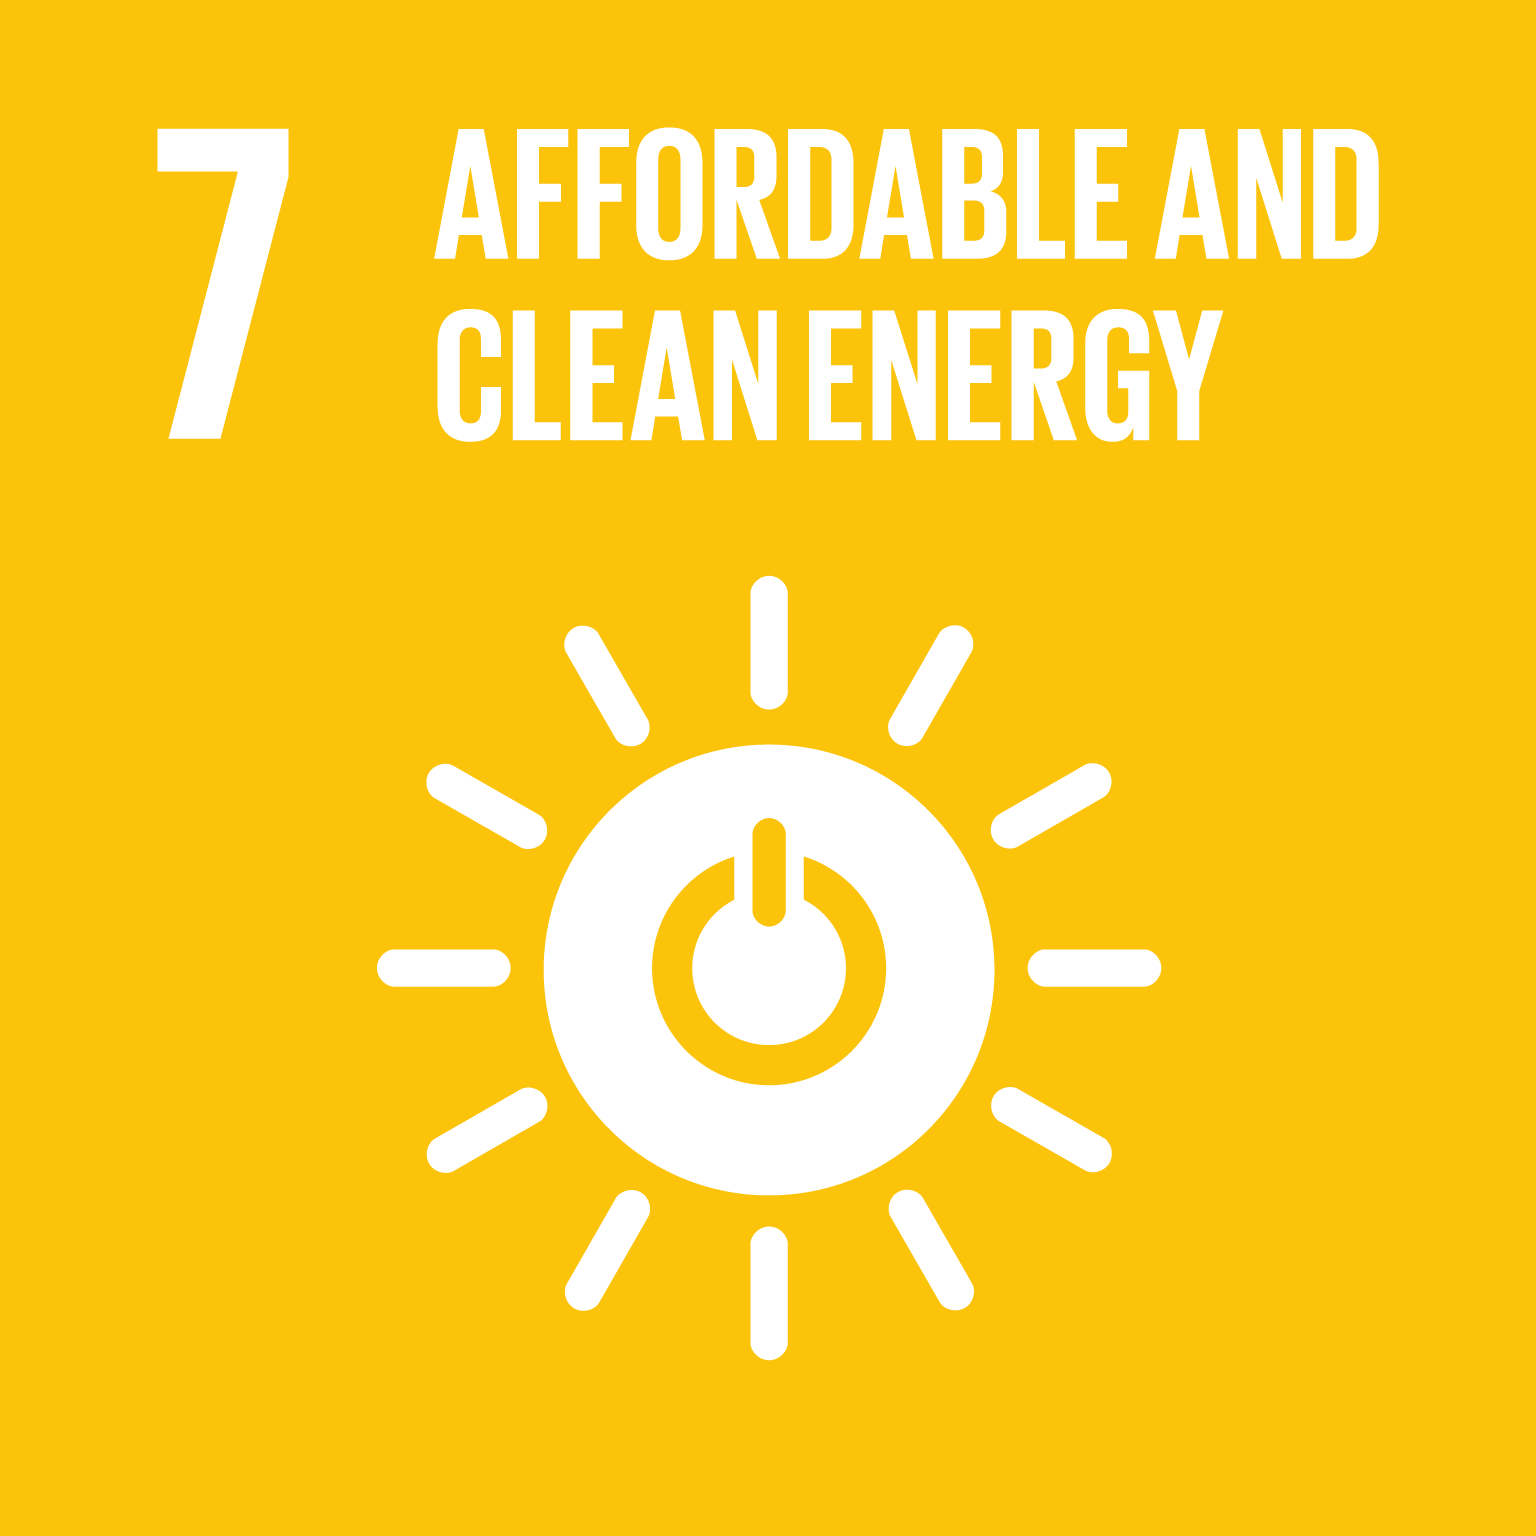 【SDGs logo】AFFORDABLE AND CLEAN ENERGY